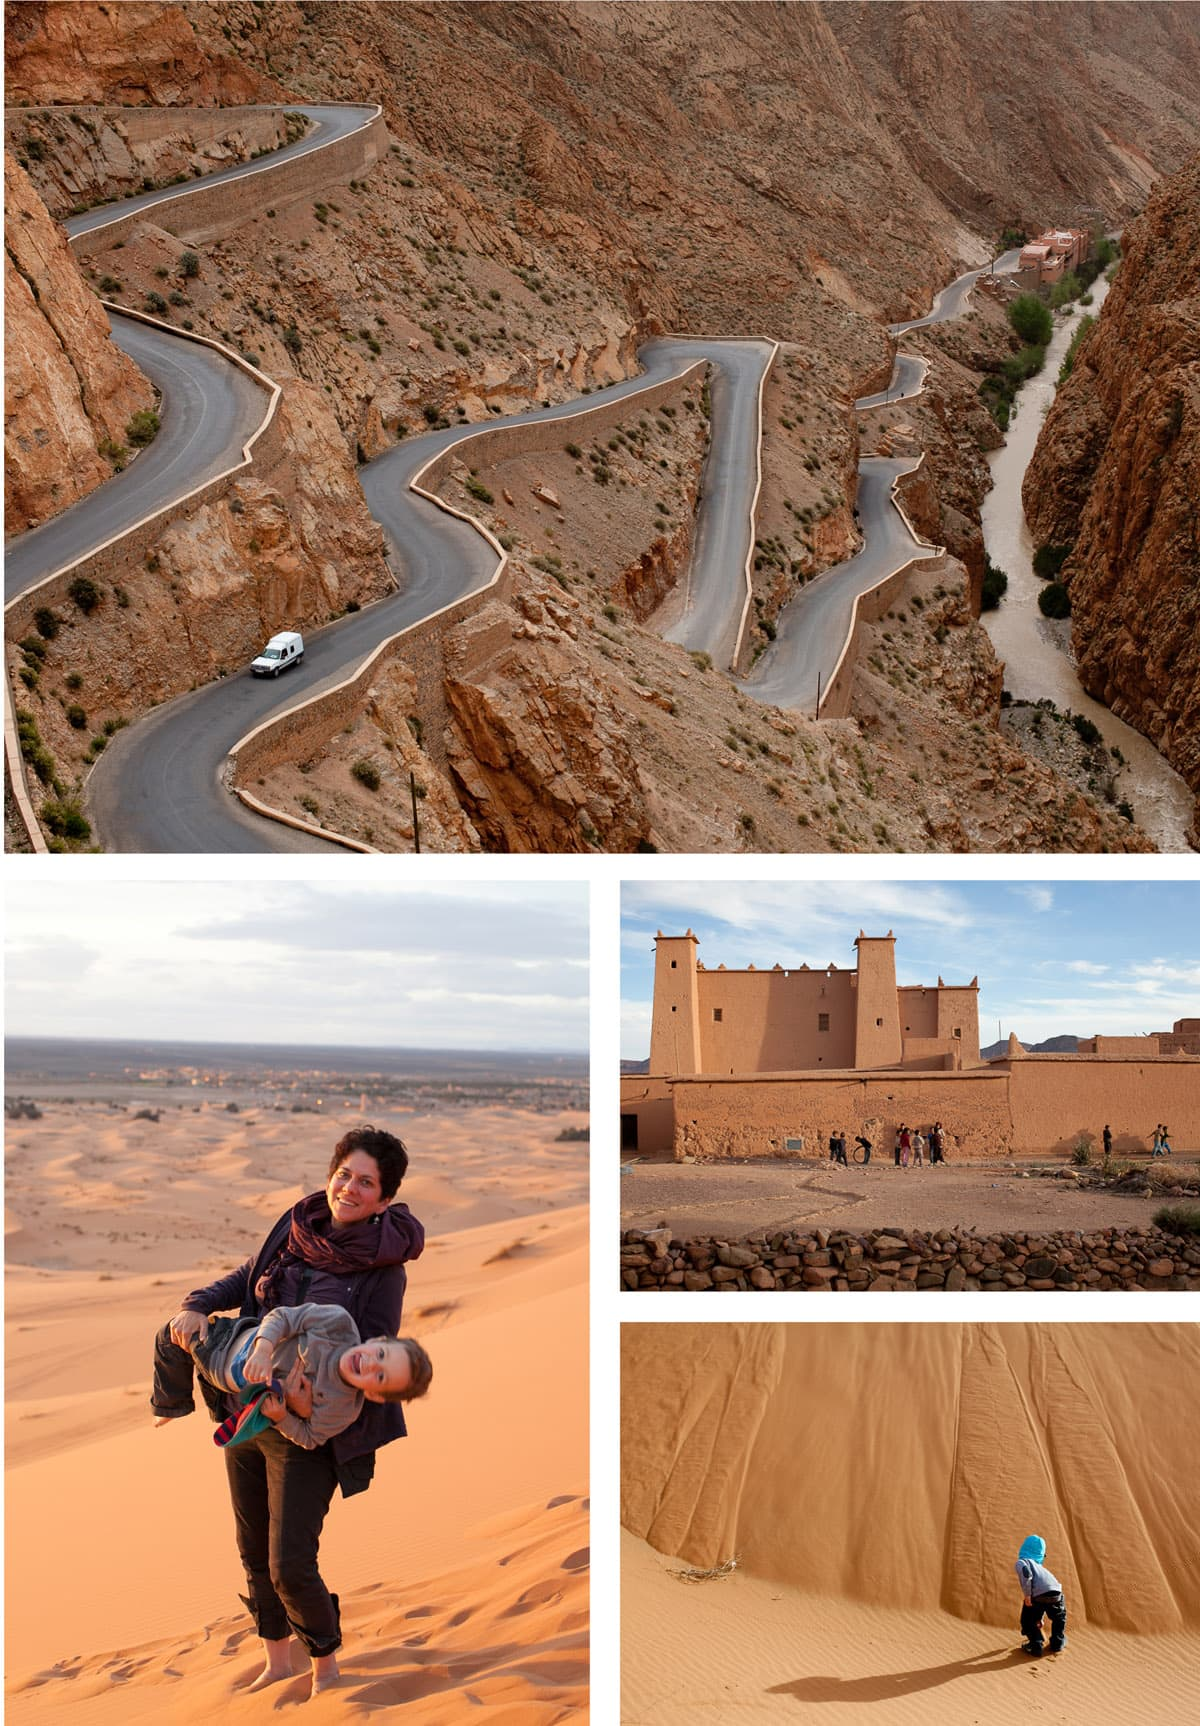 Collage of travel images in and around Morocco. Winding mountain roads and tall sand dunes.